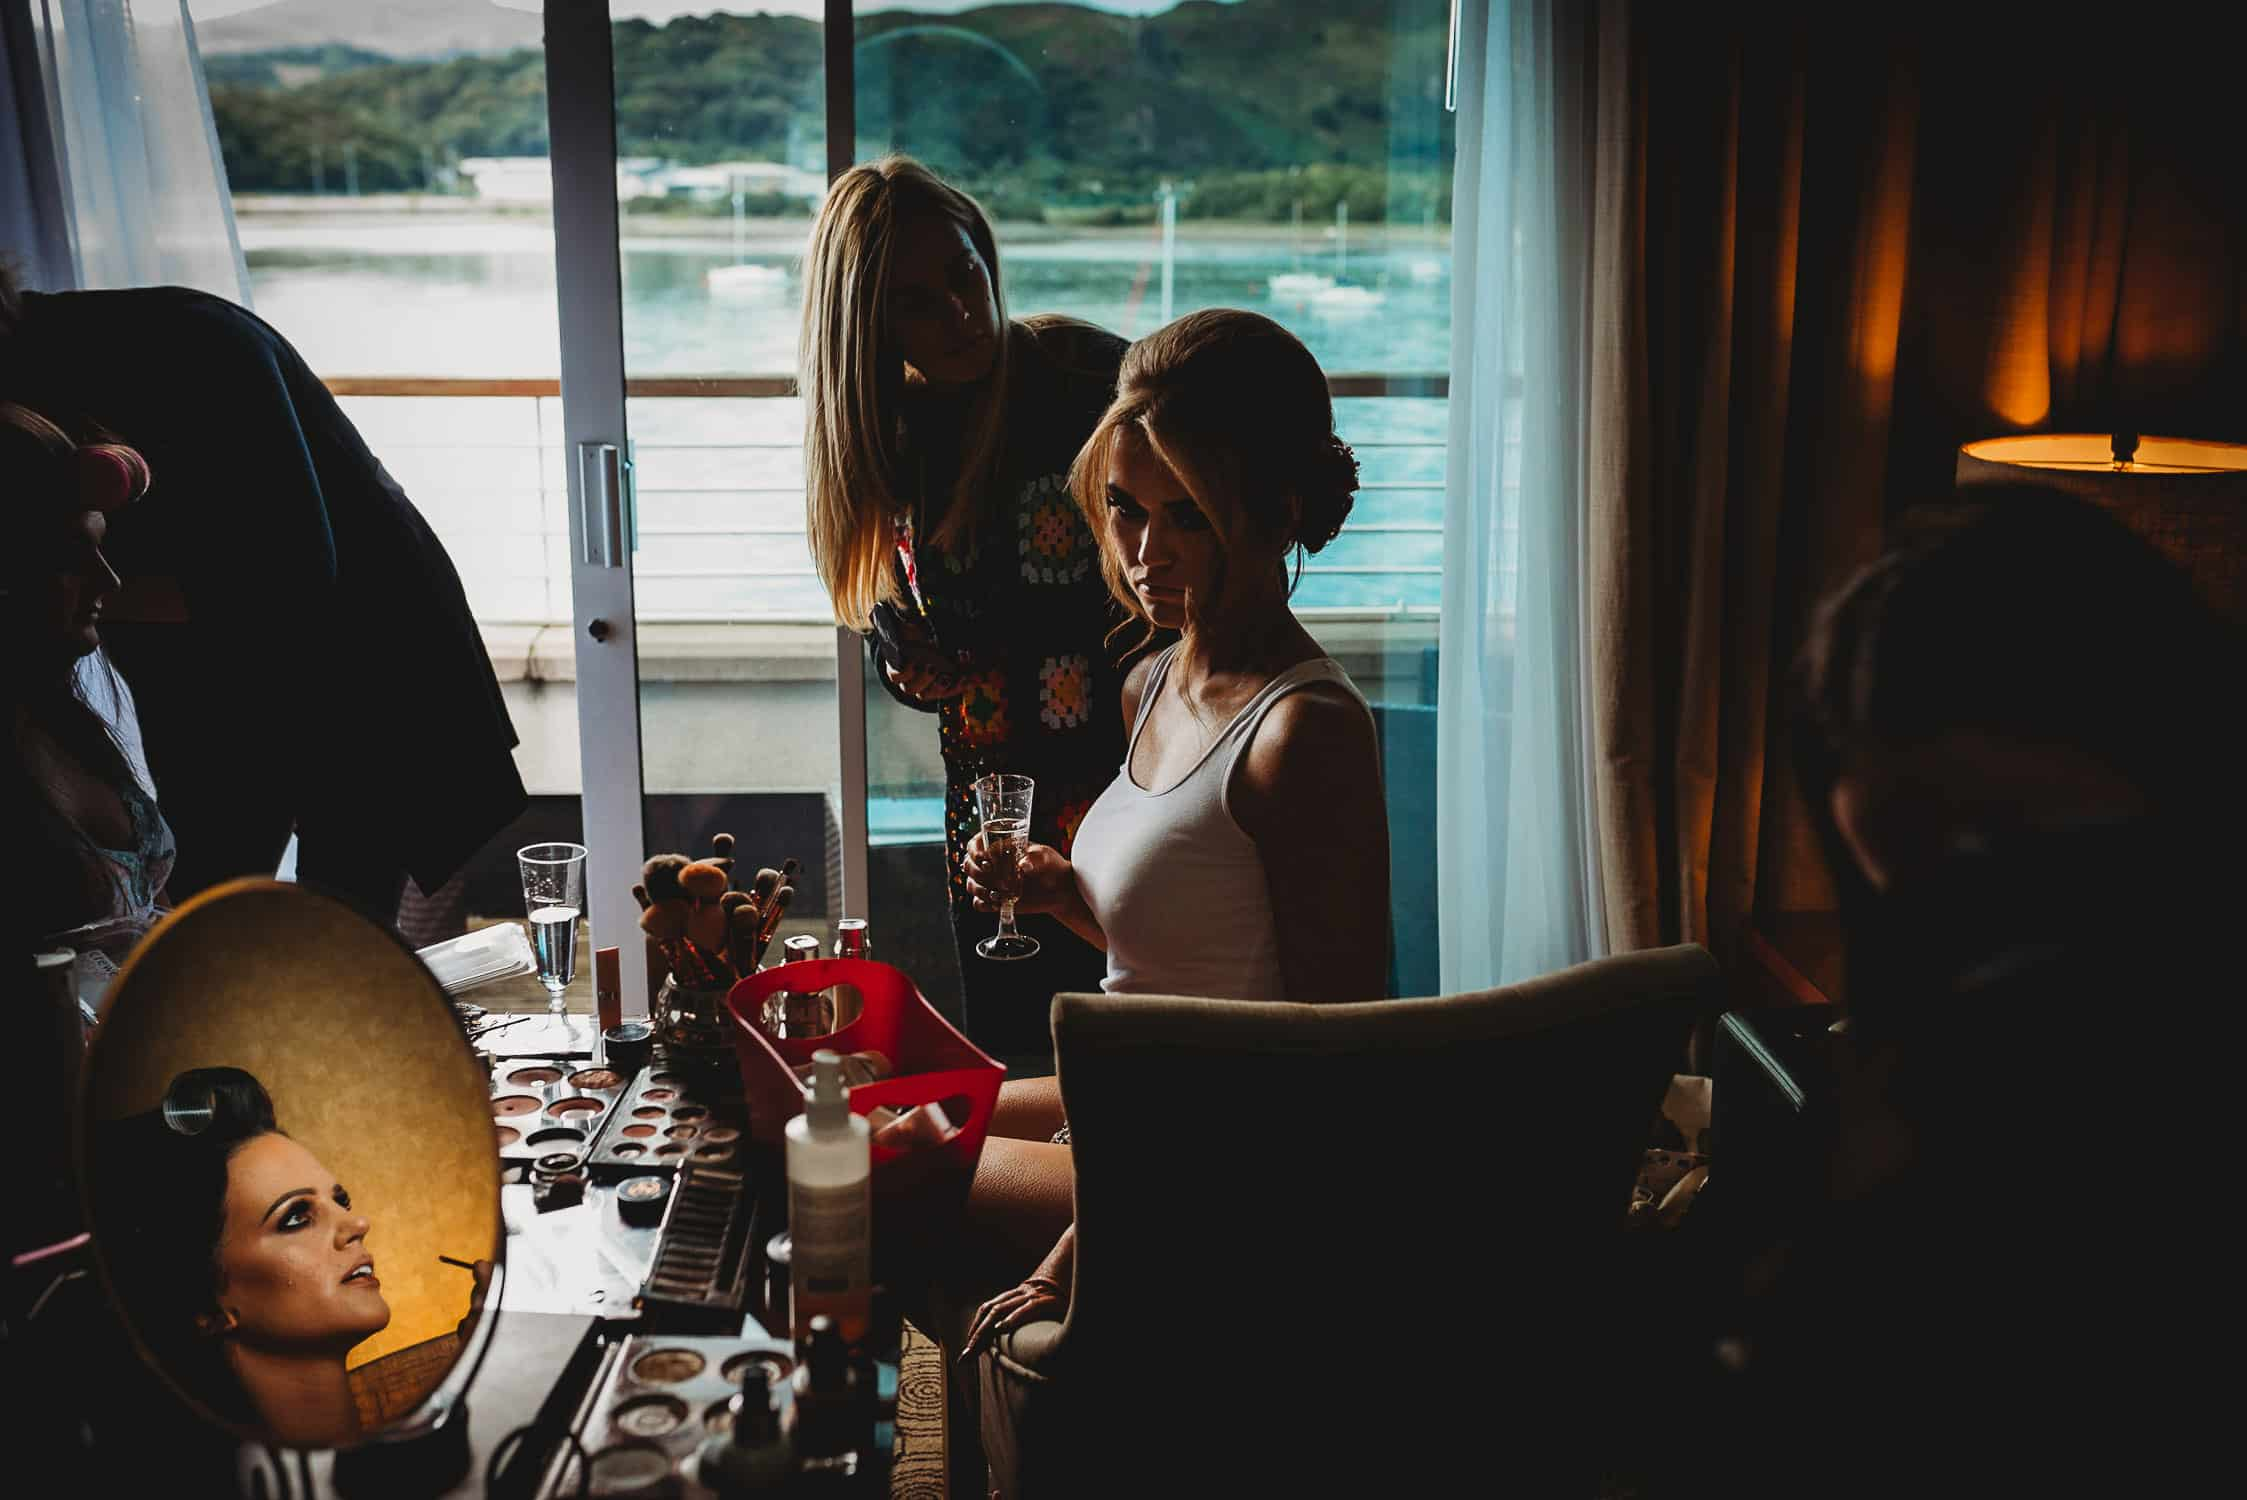 The Quay Hotel Wedding Photographer in Conwy North Wales bridesmaid and bride during bridal prep